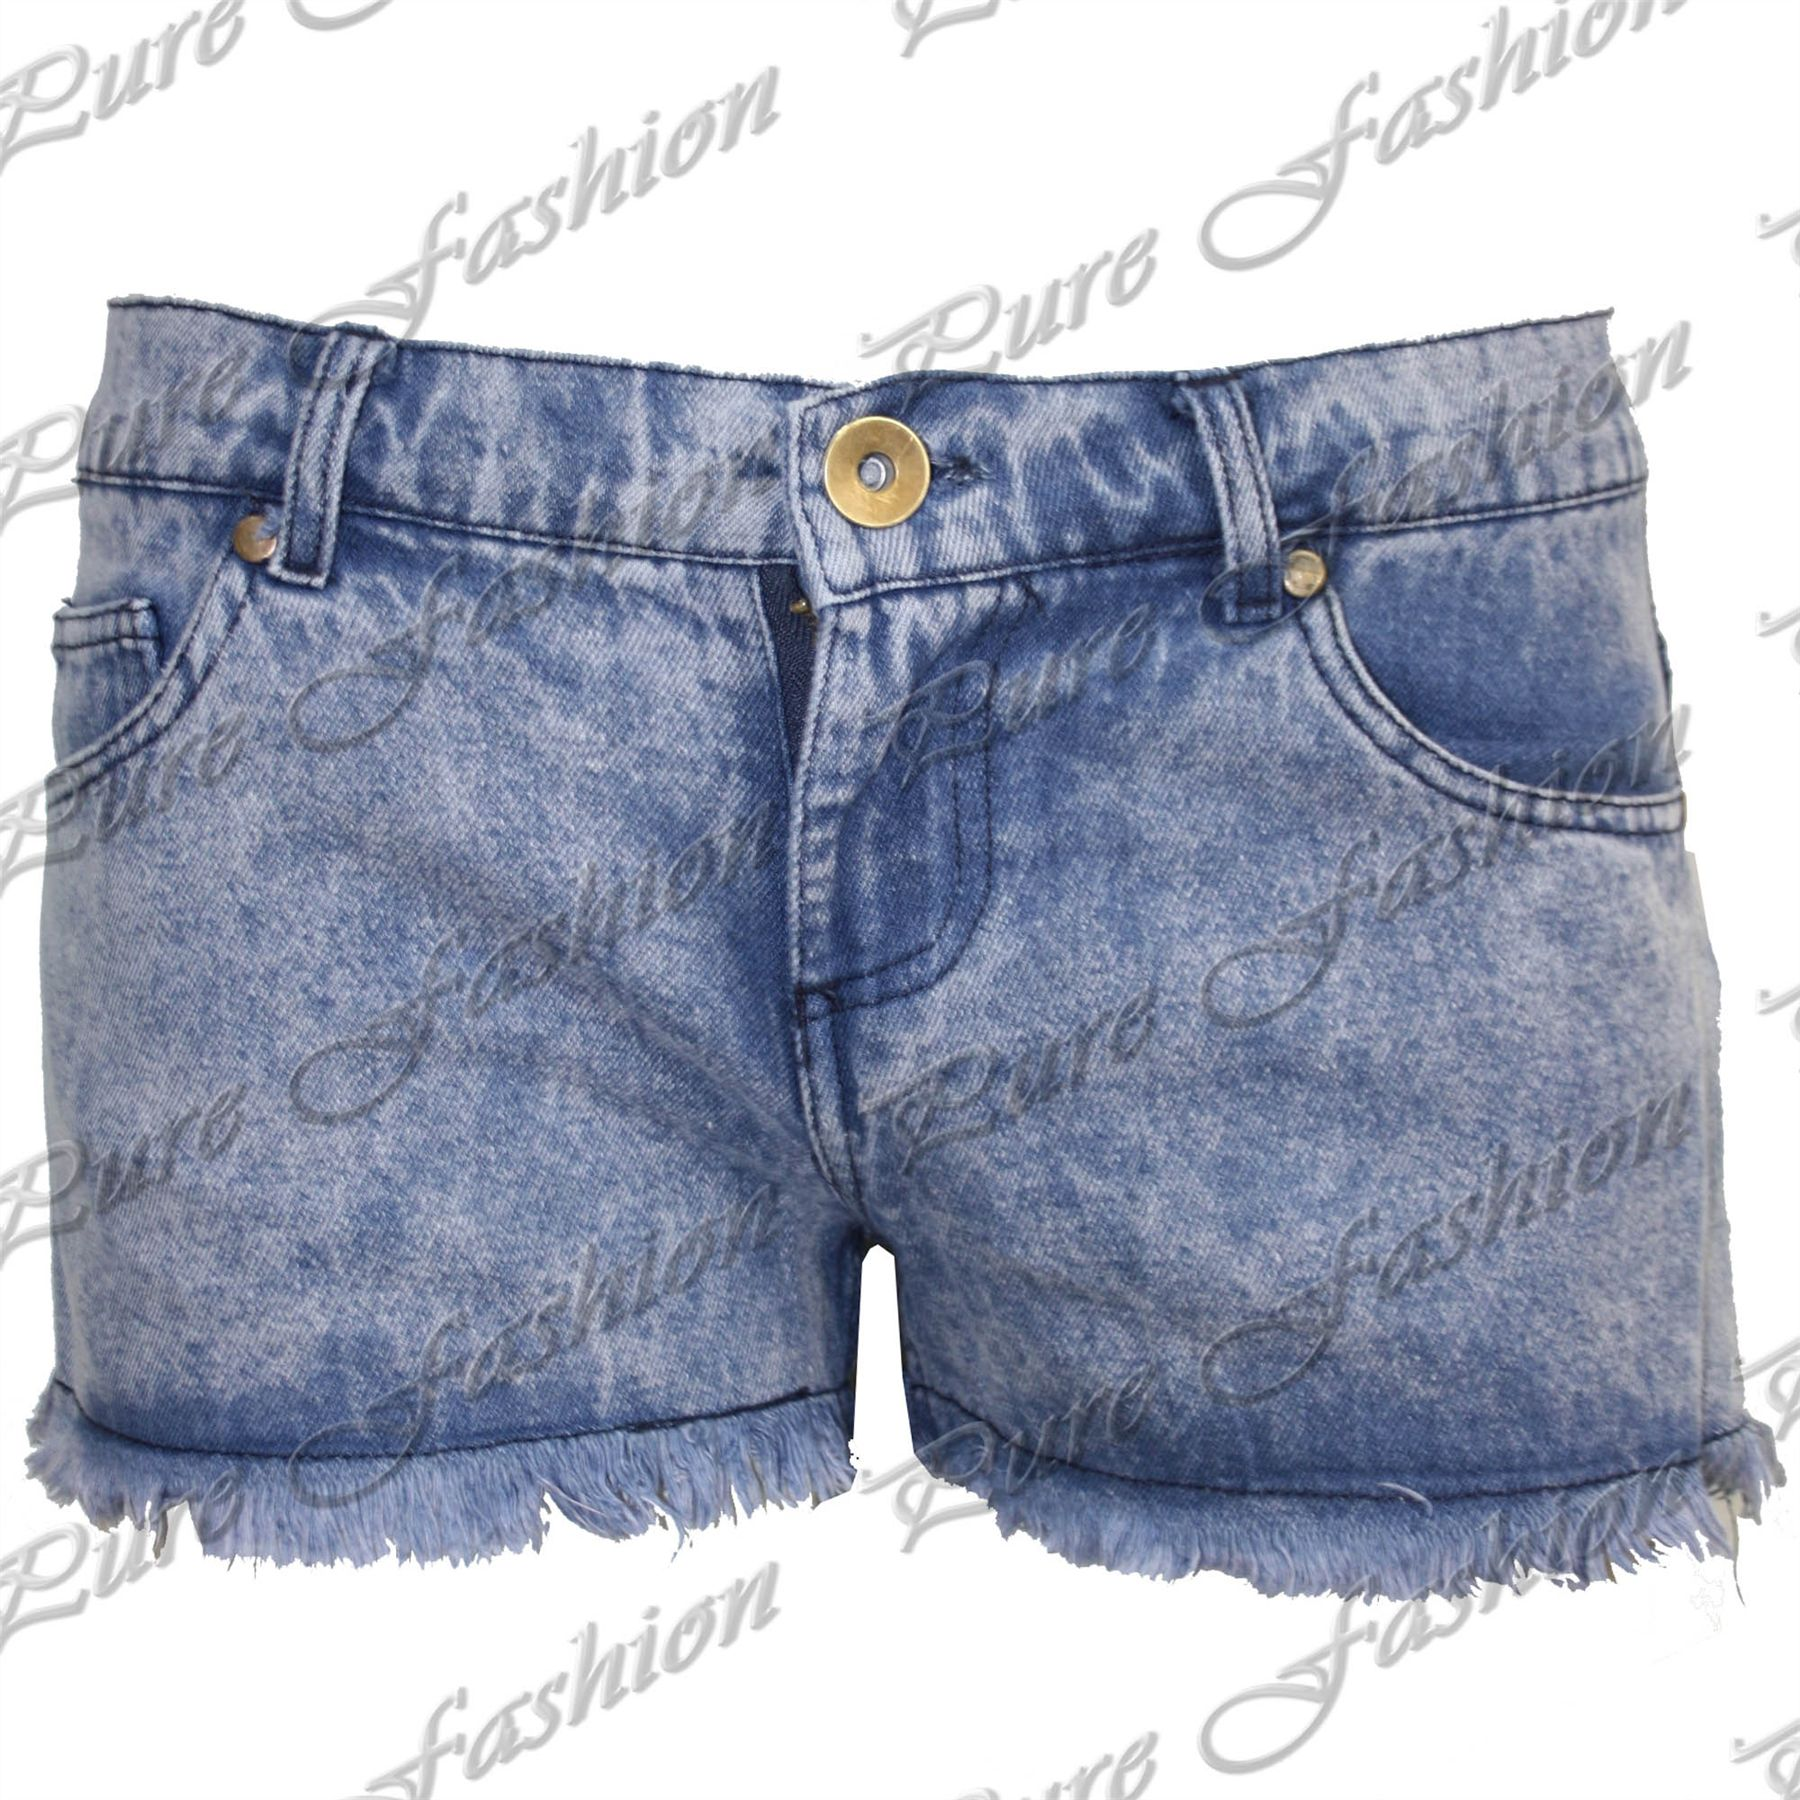 Womens-Ladies-Raw-Edge-Torn-Ripped-Frayed-Distressed-Denim-Shorts-Hot-Pants-Size